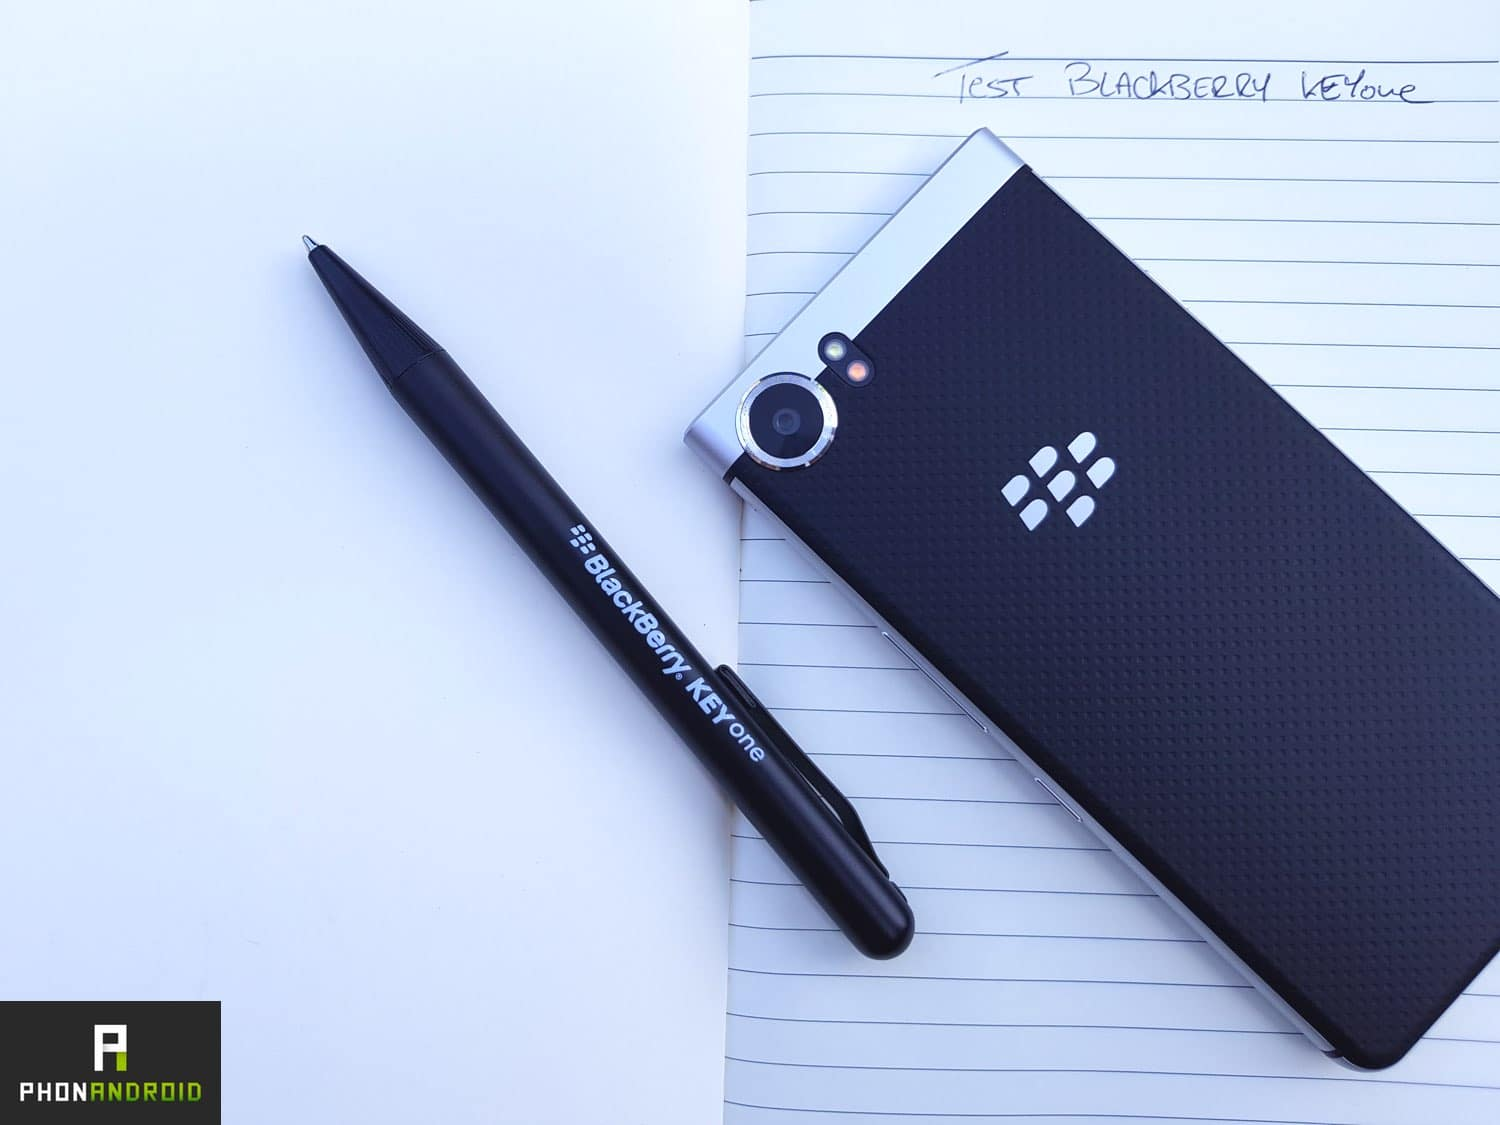 test blackberry keyone prix